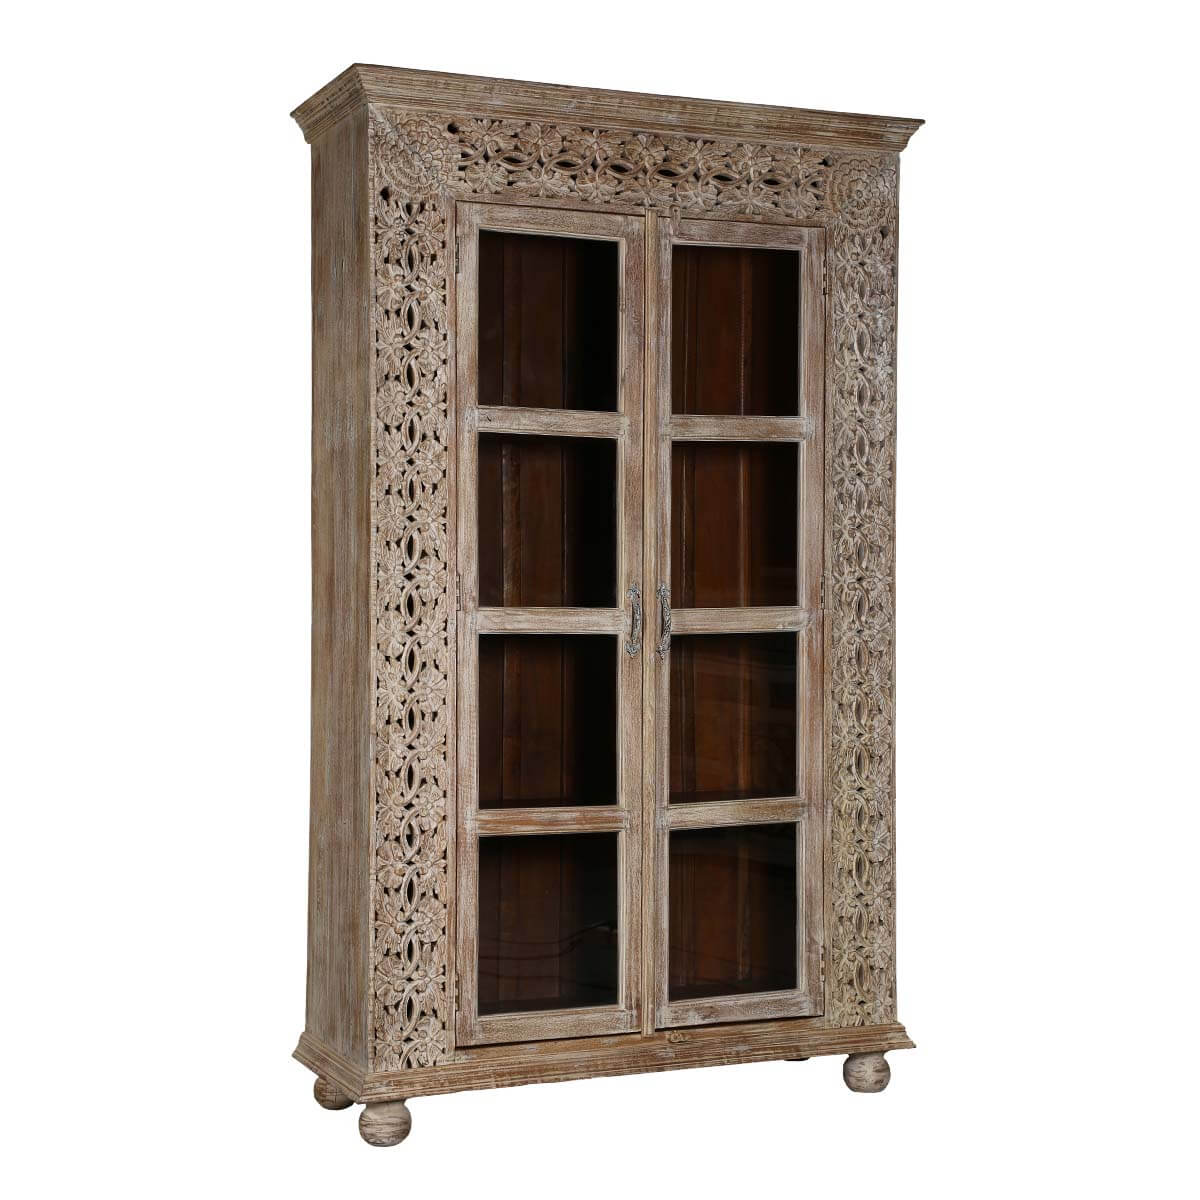 Handcrafted 88 Rustic Solid Wood Glass Door Armoire